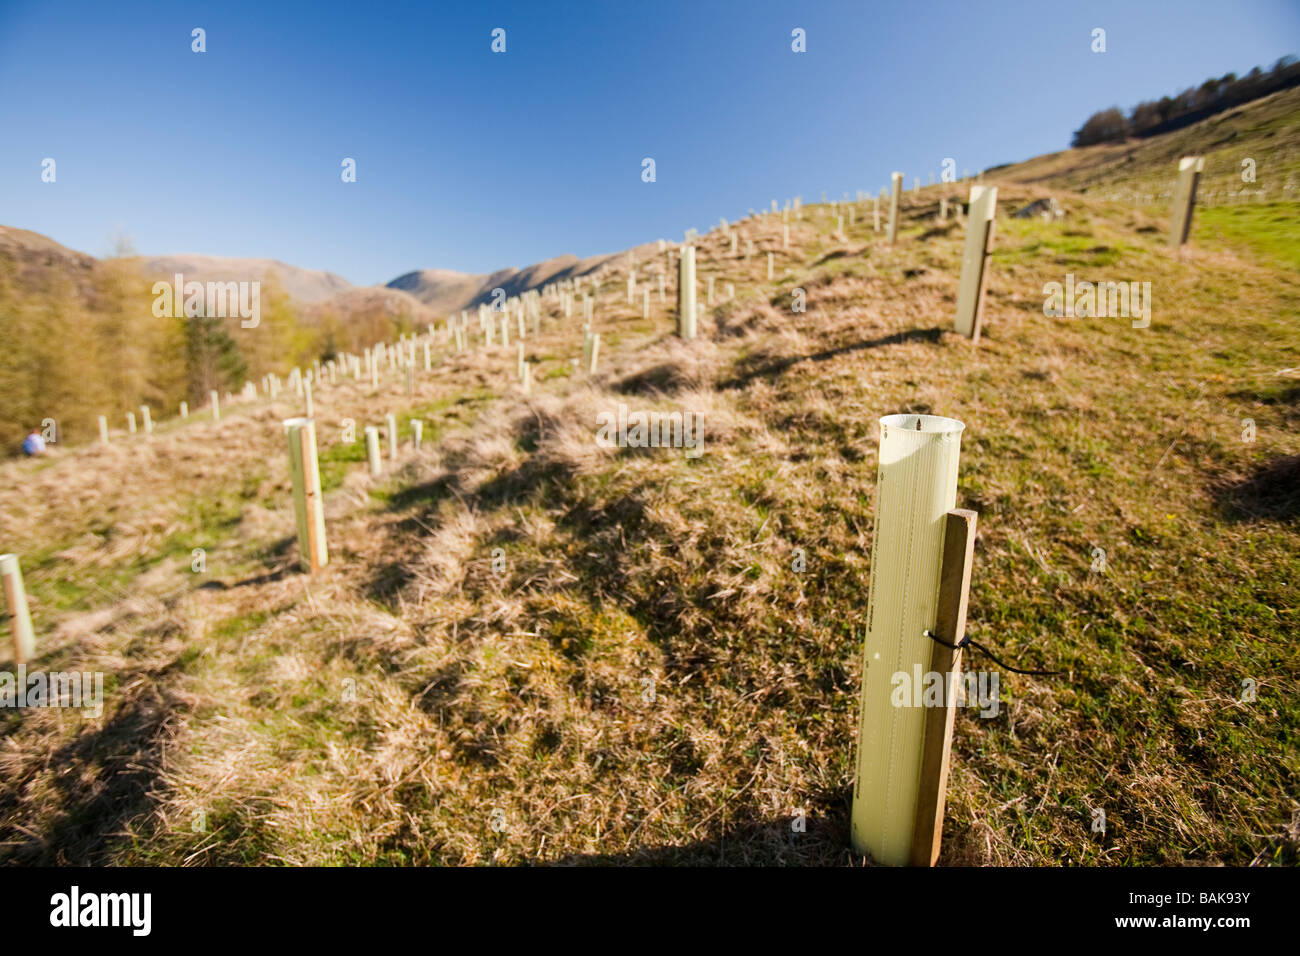 Native tree planting in Troutbeck near Windermere in the Lake district UK - Stock Image